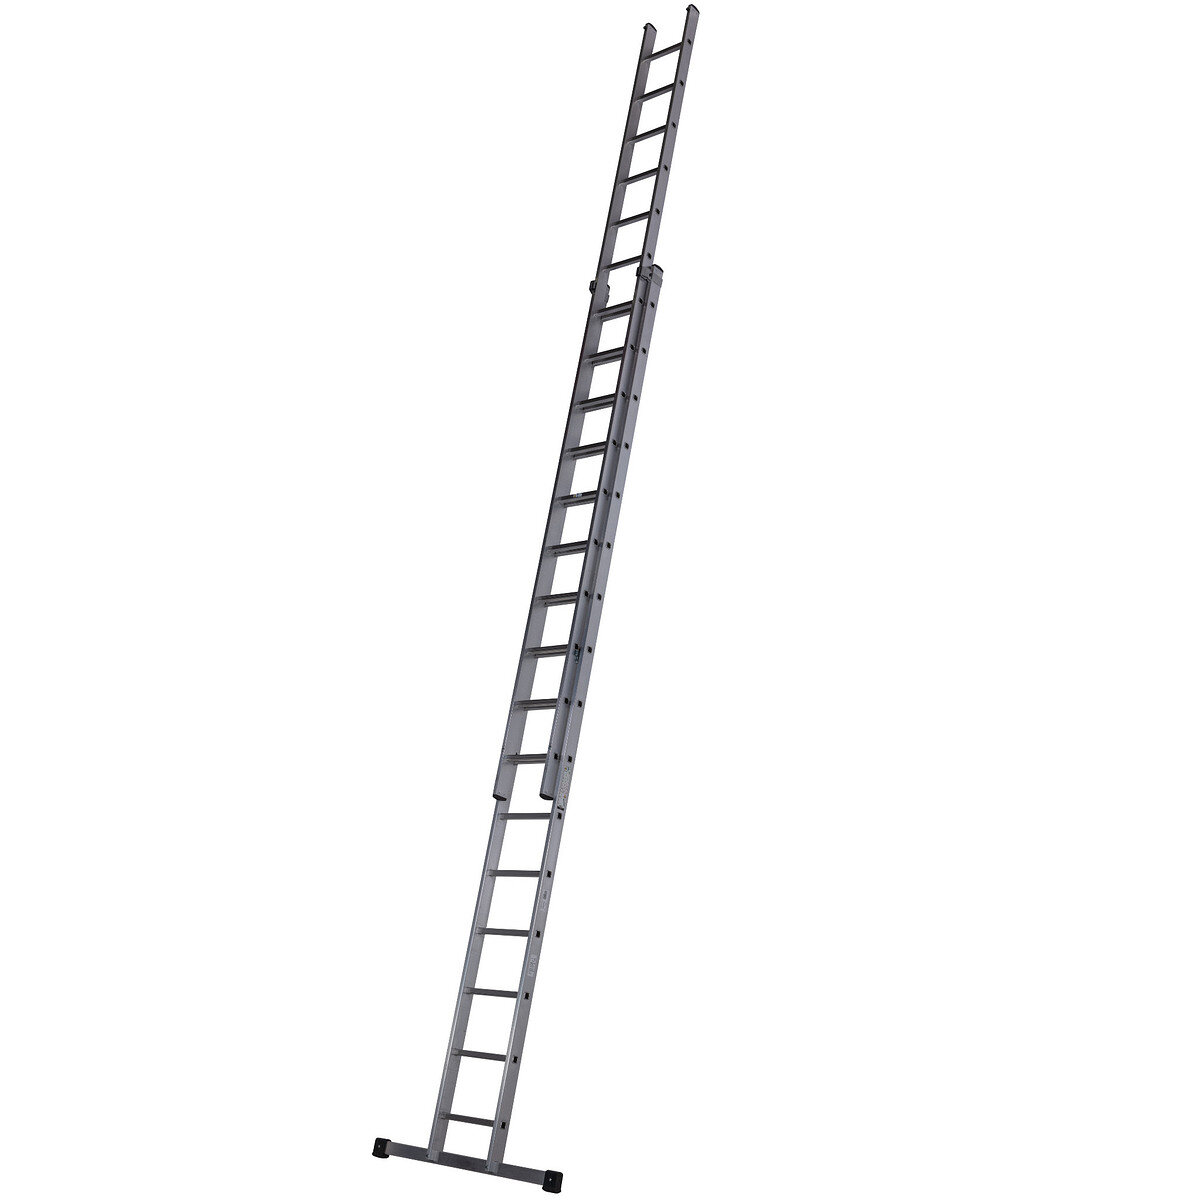 YOUNGMAN TRADE 200 2 SECTION EXTENSION LADDER 2.51M